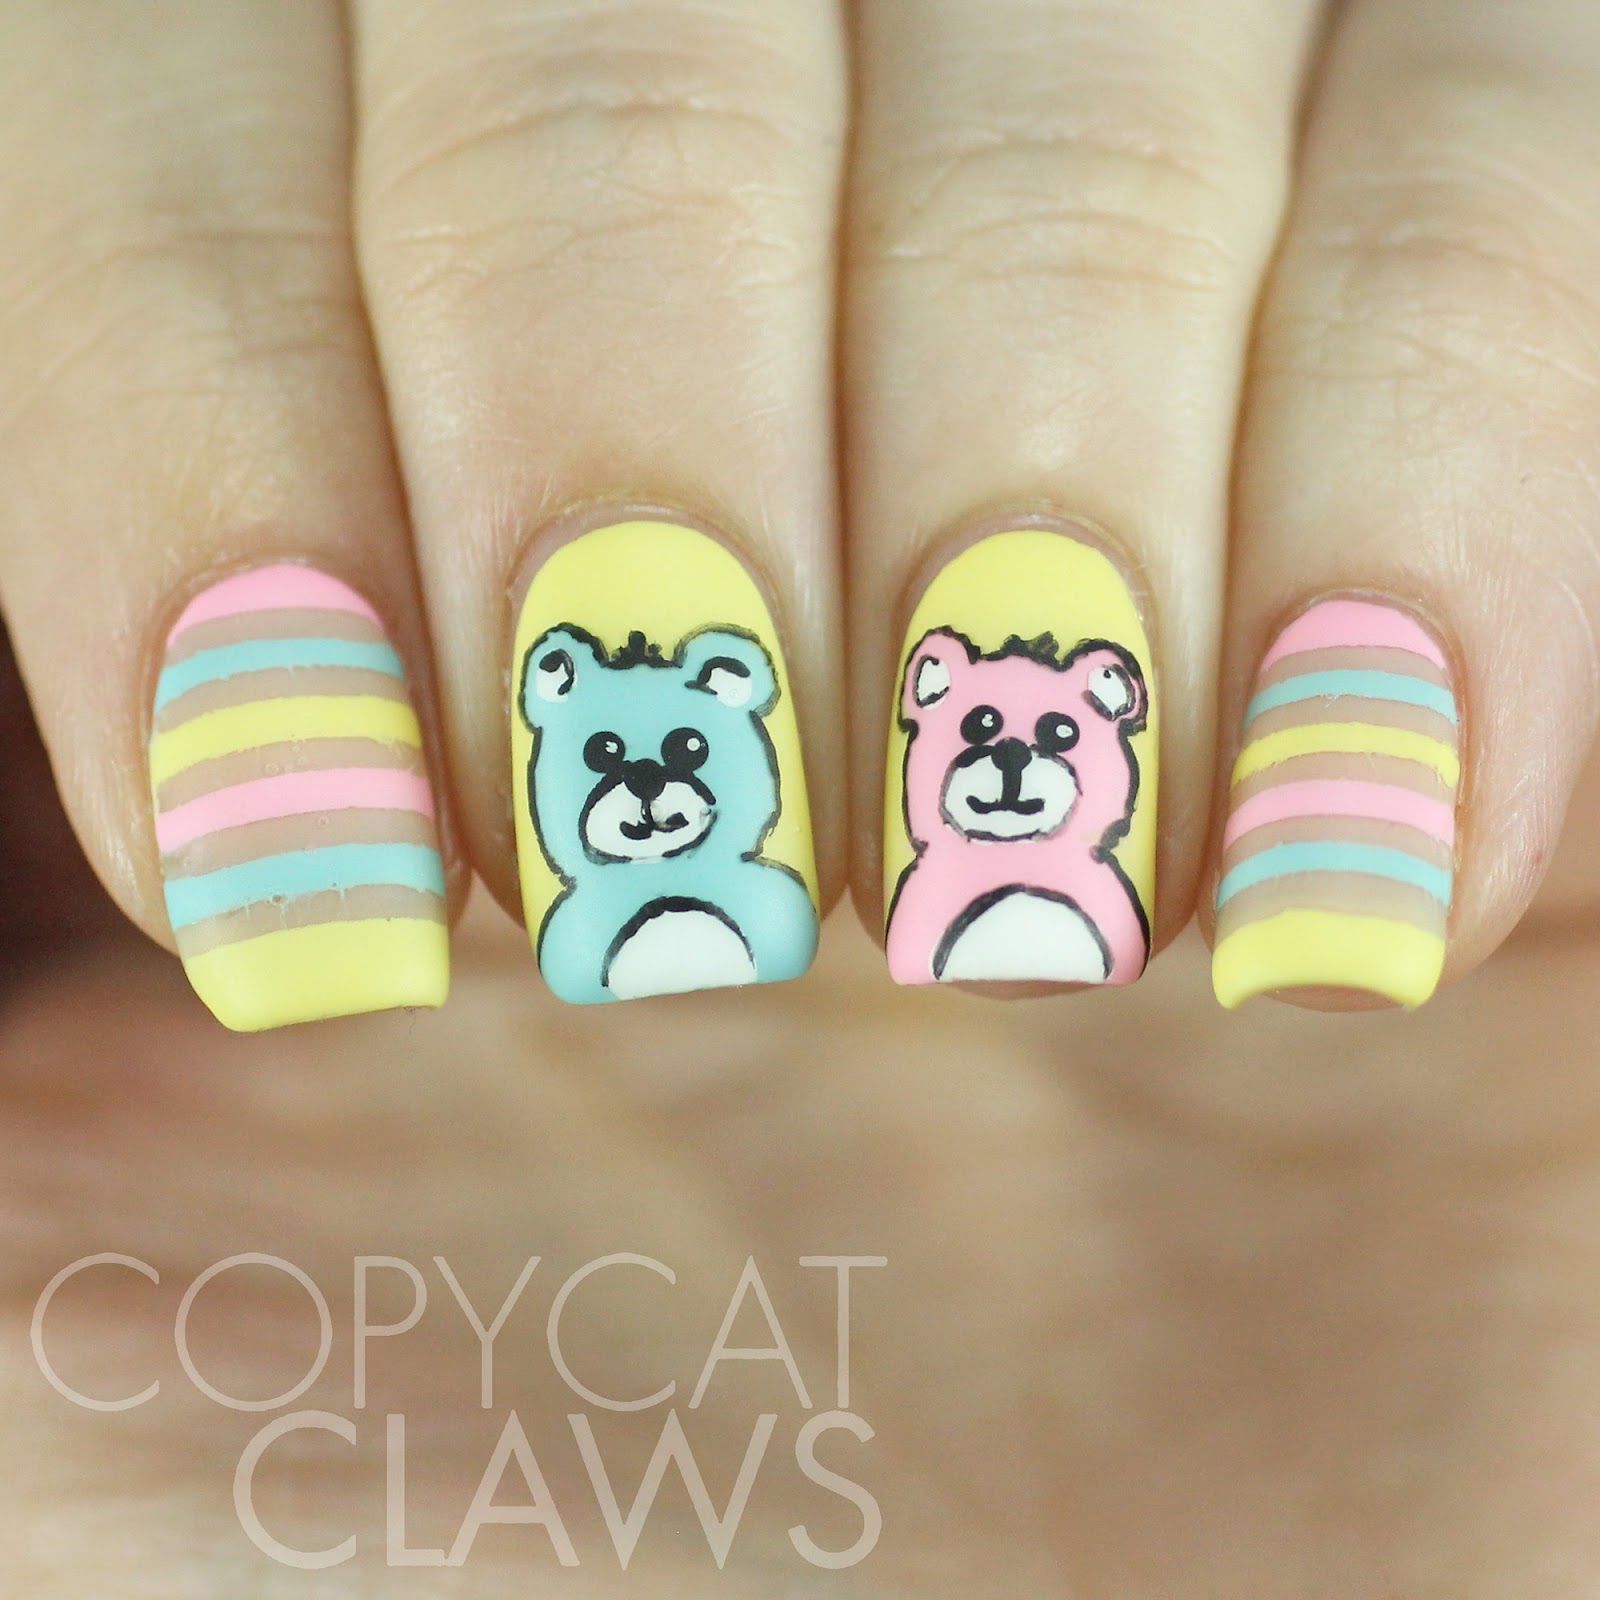 Bear Nail Art: Copycat Claws: The Digit-al Dozen Does Childhood: Day 2